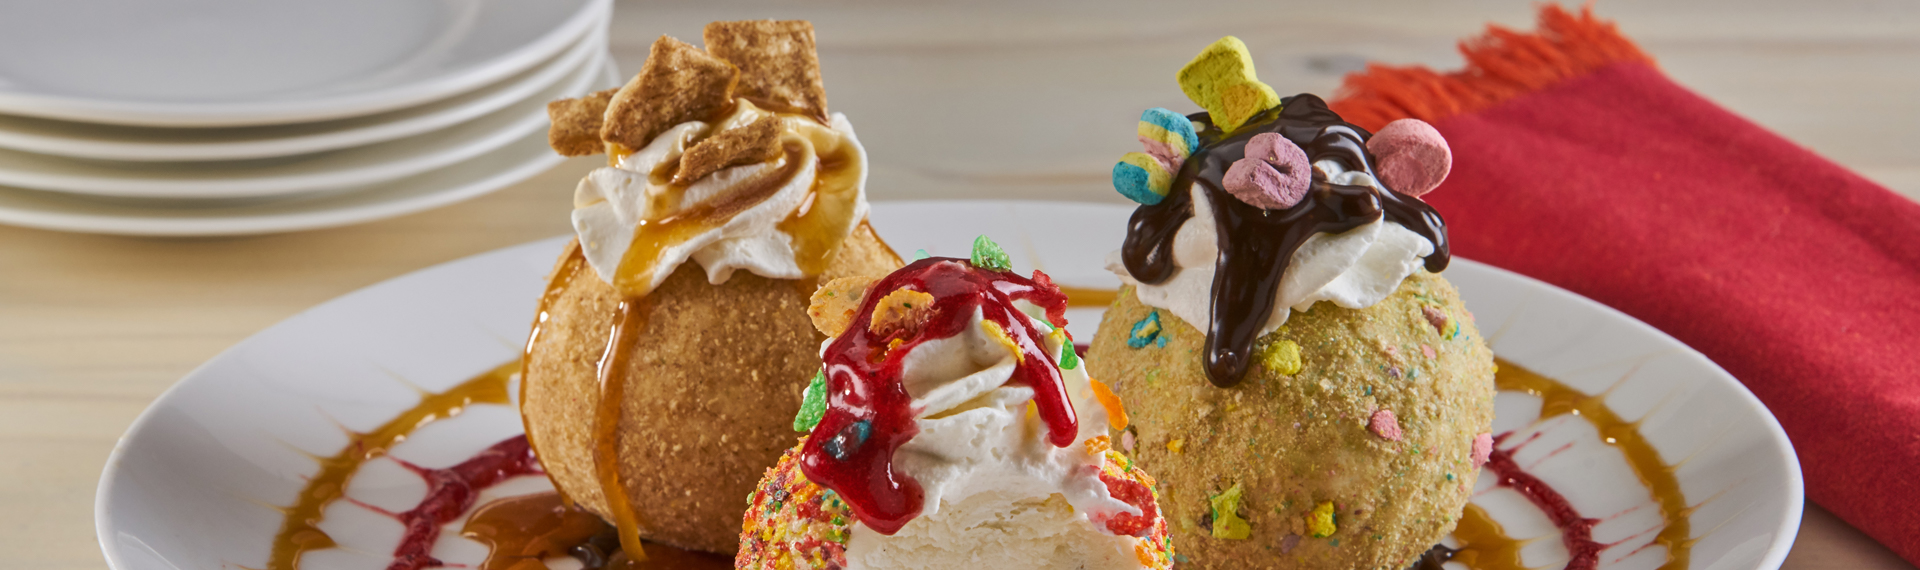 Psychedelic Cereal Sundae Extreme